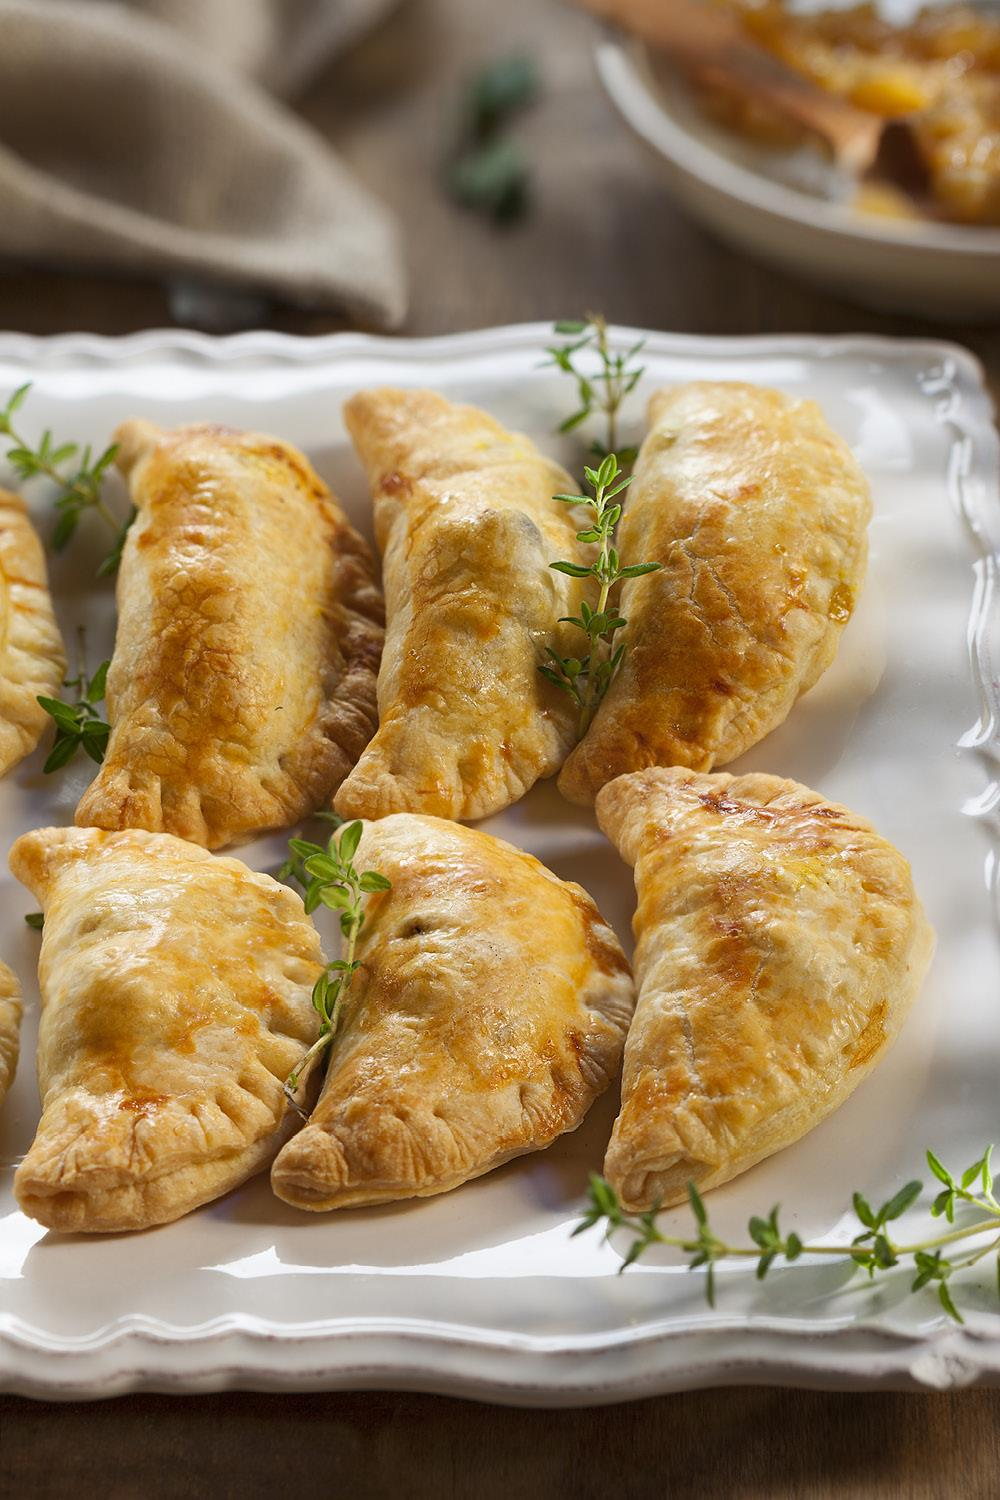 canapes navideños15. Empanadillas